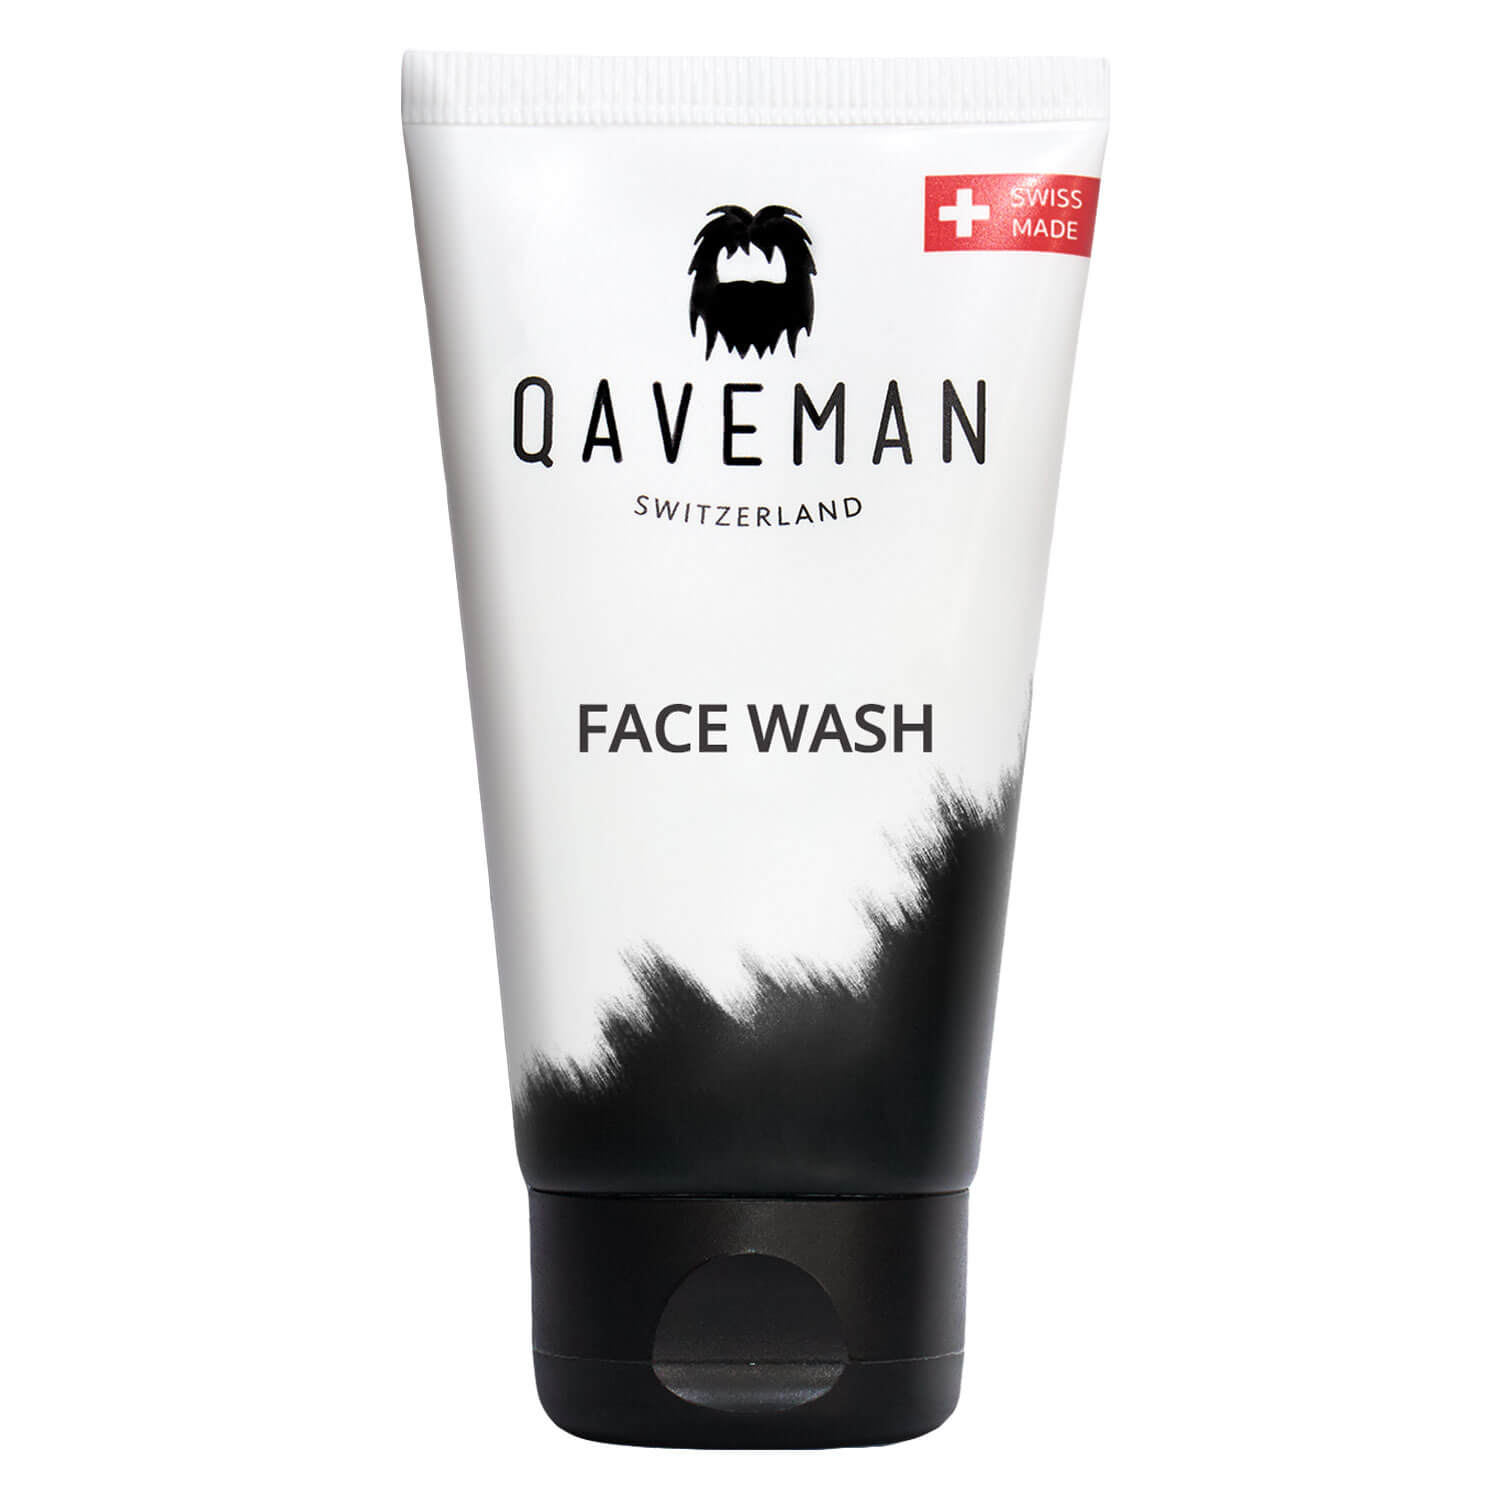 Qaveman Care - Face Wash